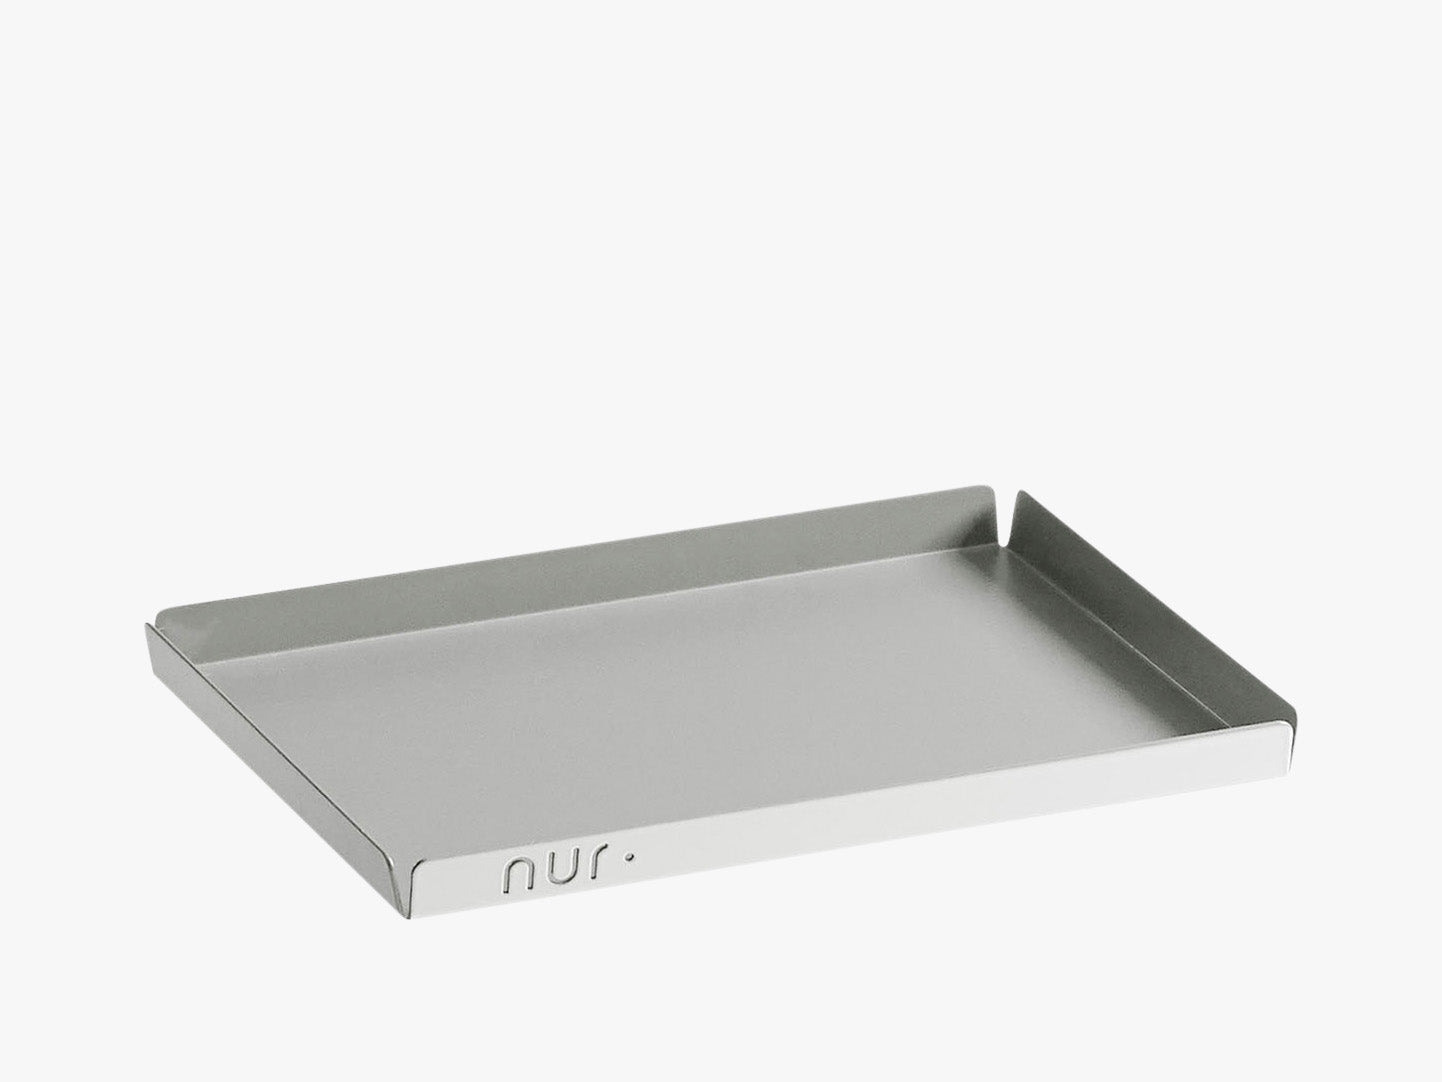 NUR Tray Medium, Light Grey fra NUR